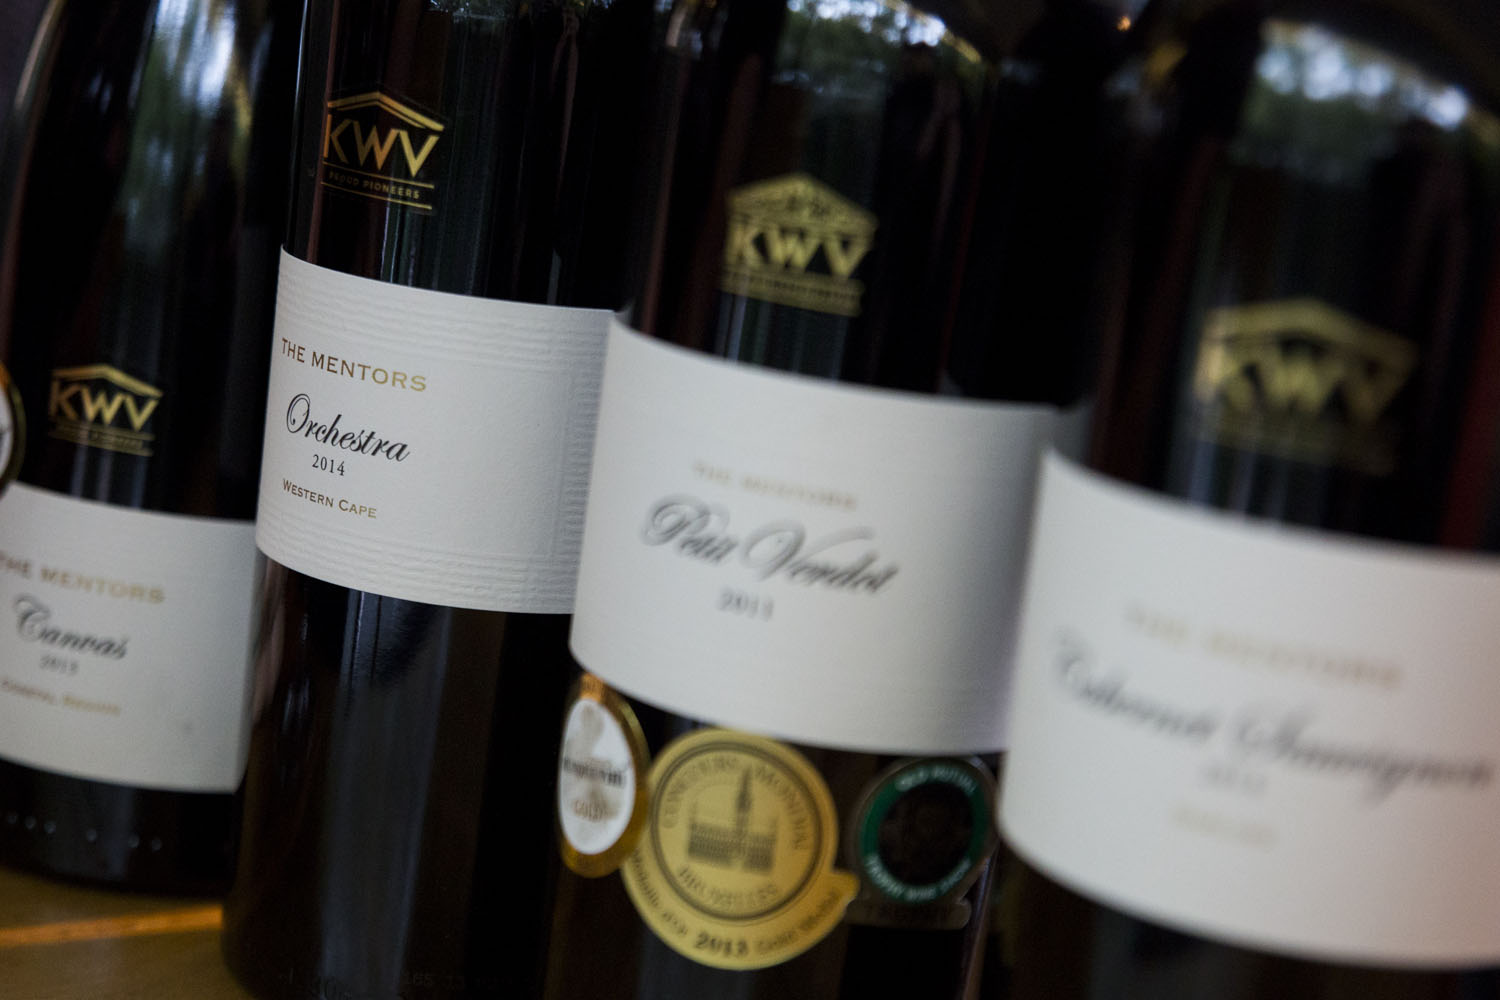 KWV The Mentors' reputation for quality reaches Michelin-star restaurant